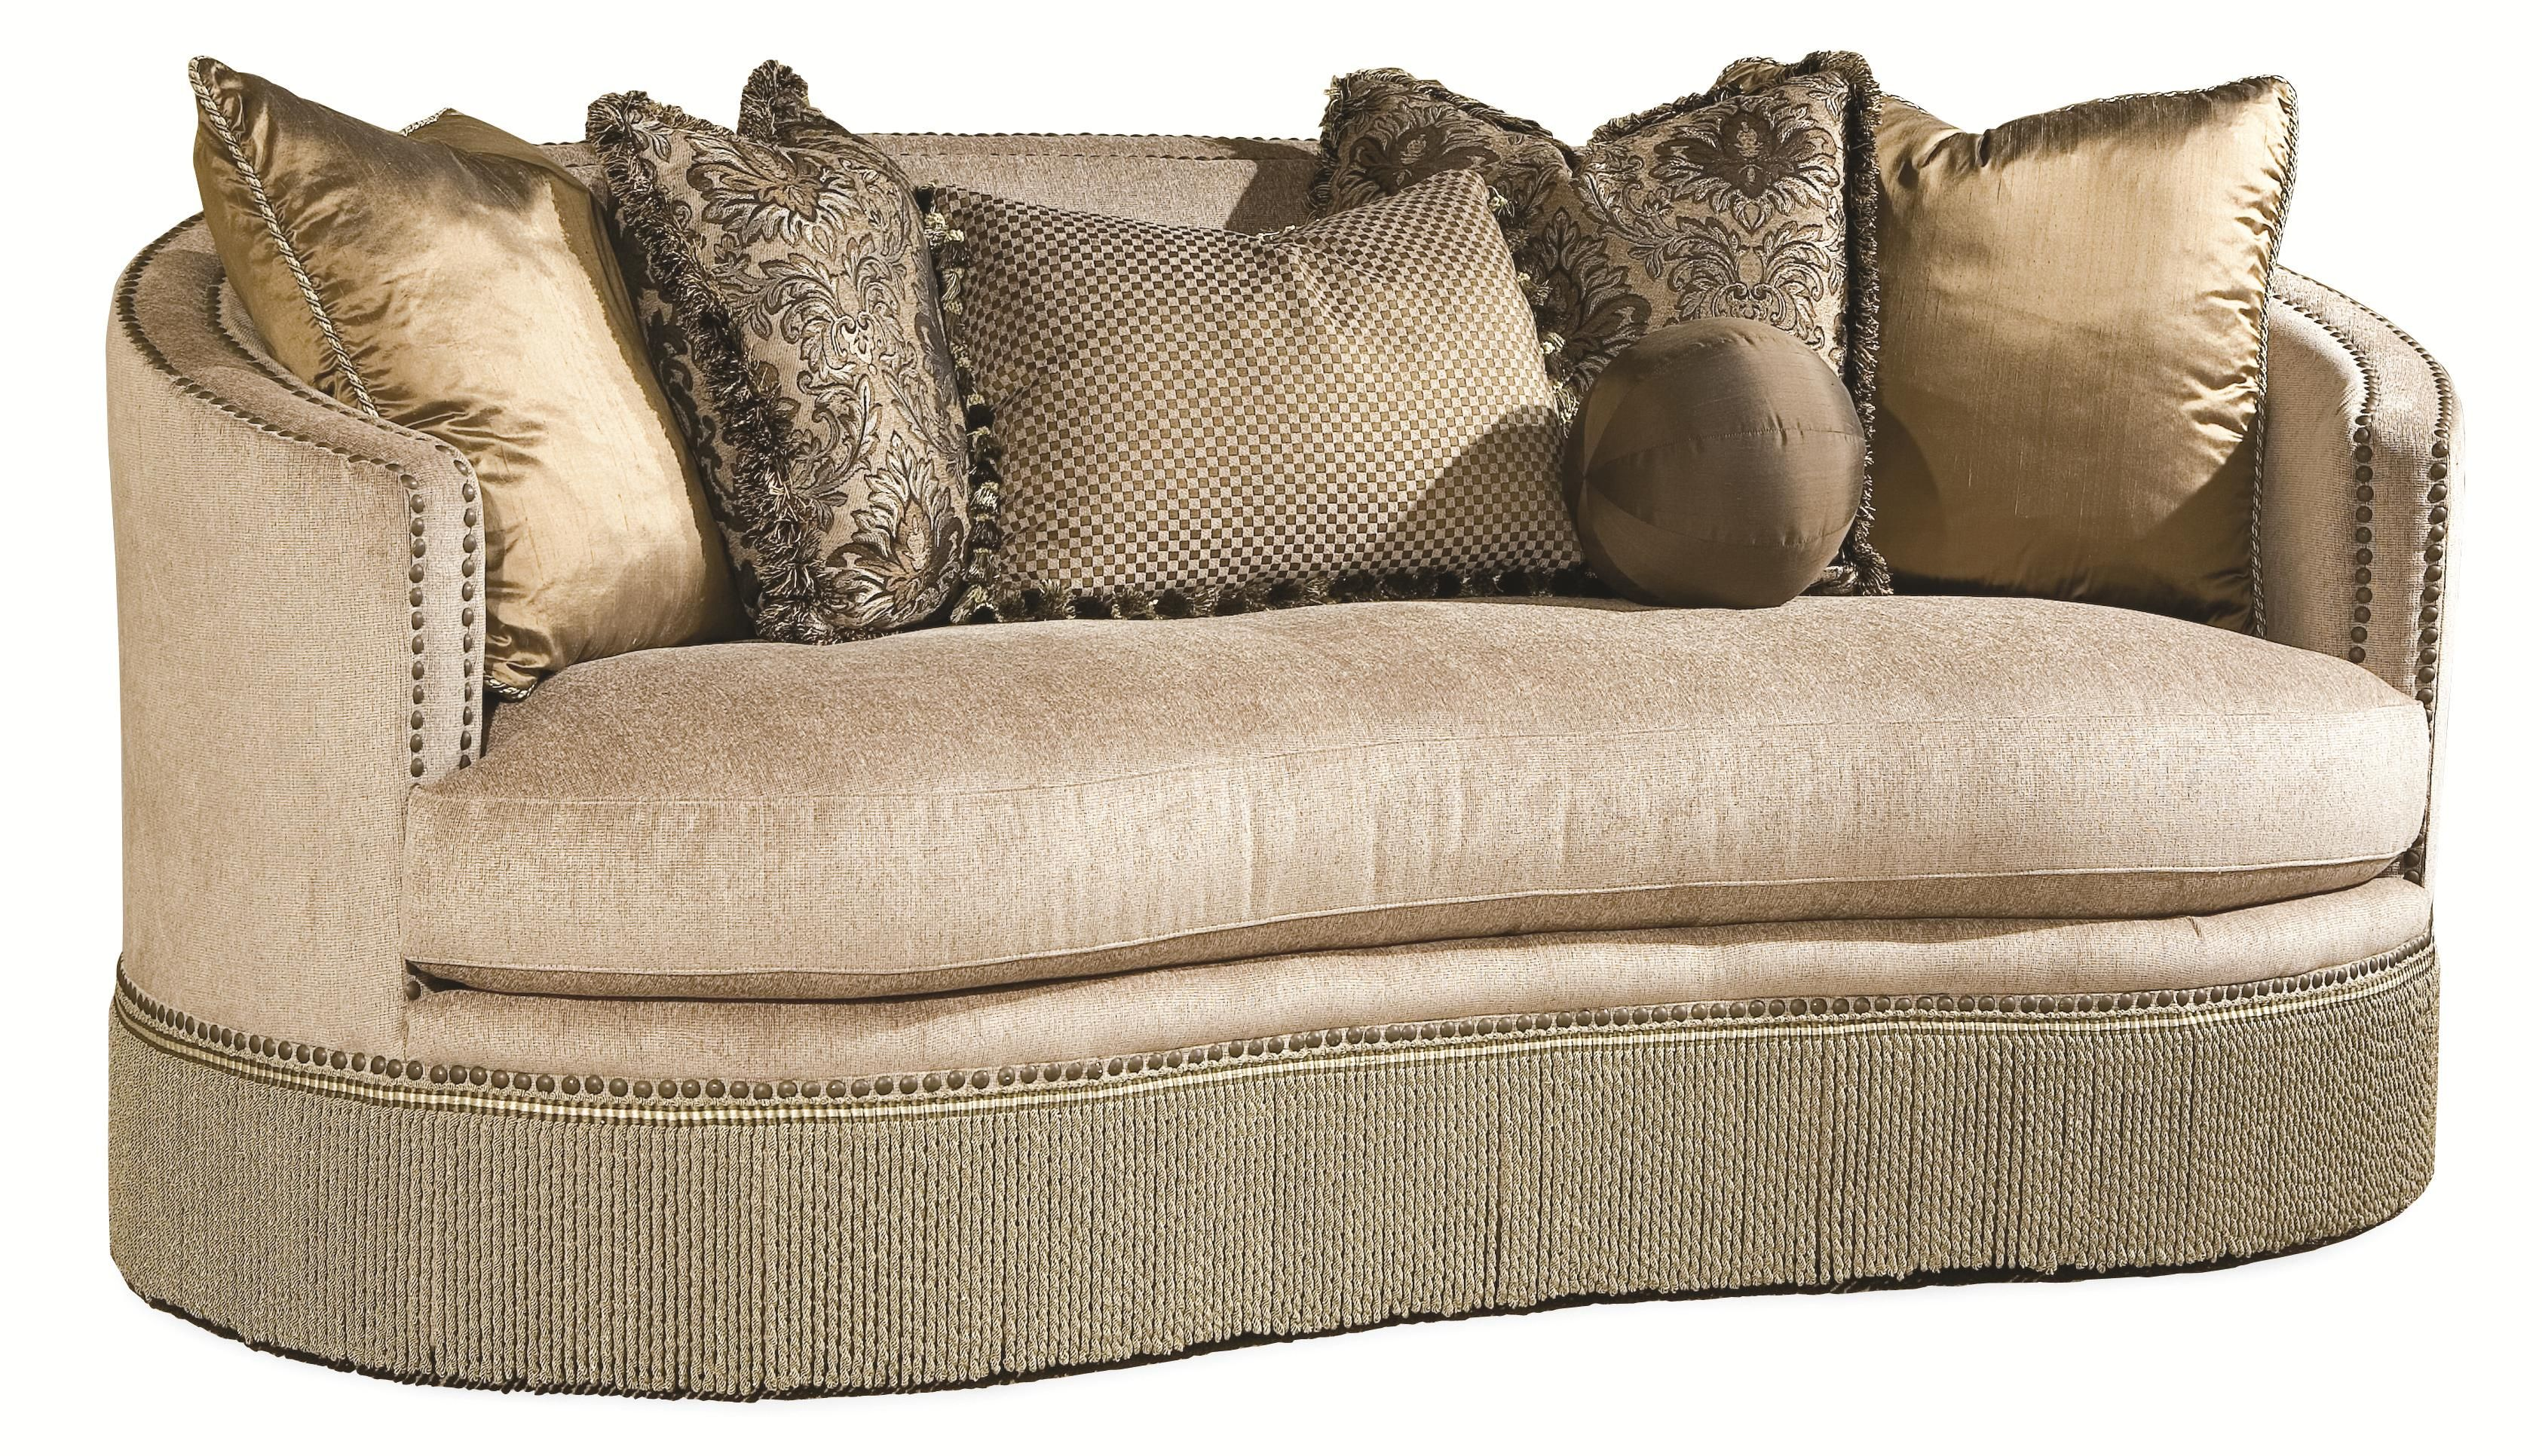 Whitney By Rachlin Kidney Sofa By Rachlin Classics At Olindeu0027s Furniture